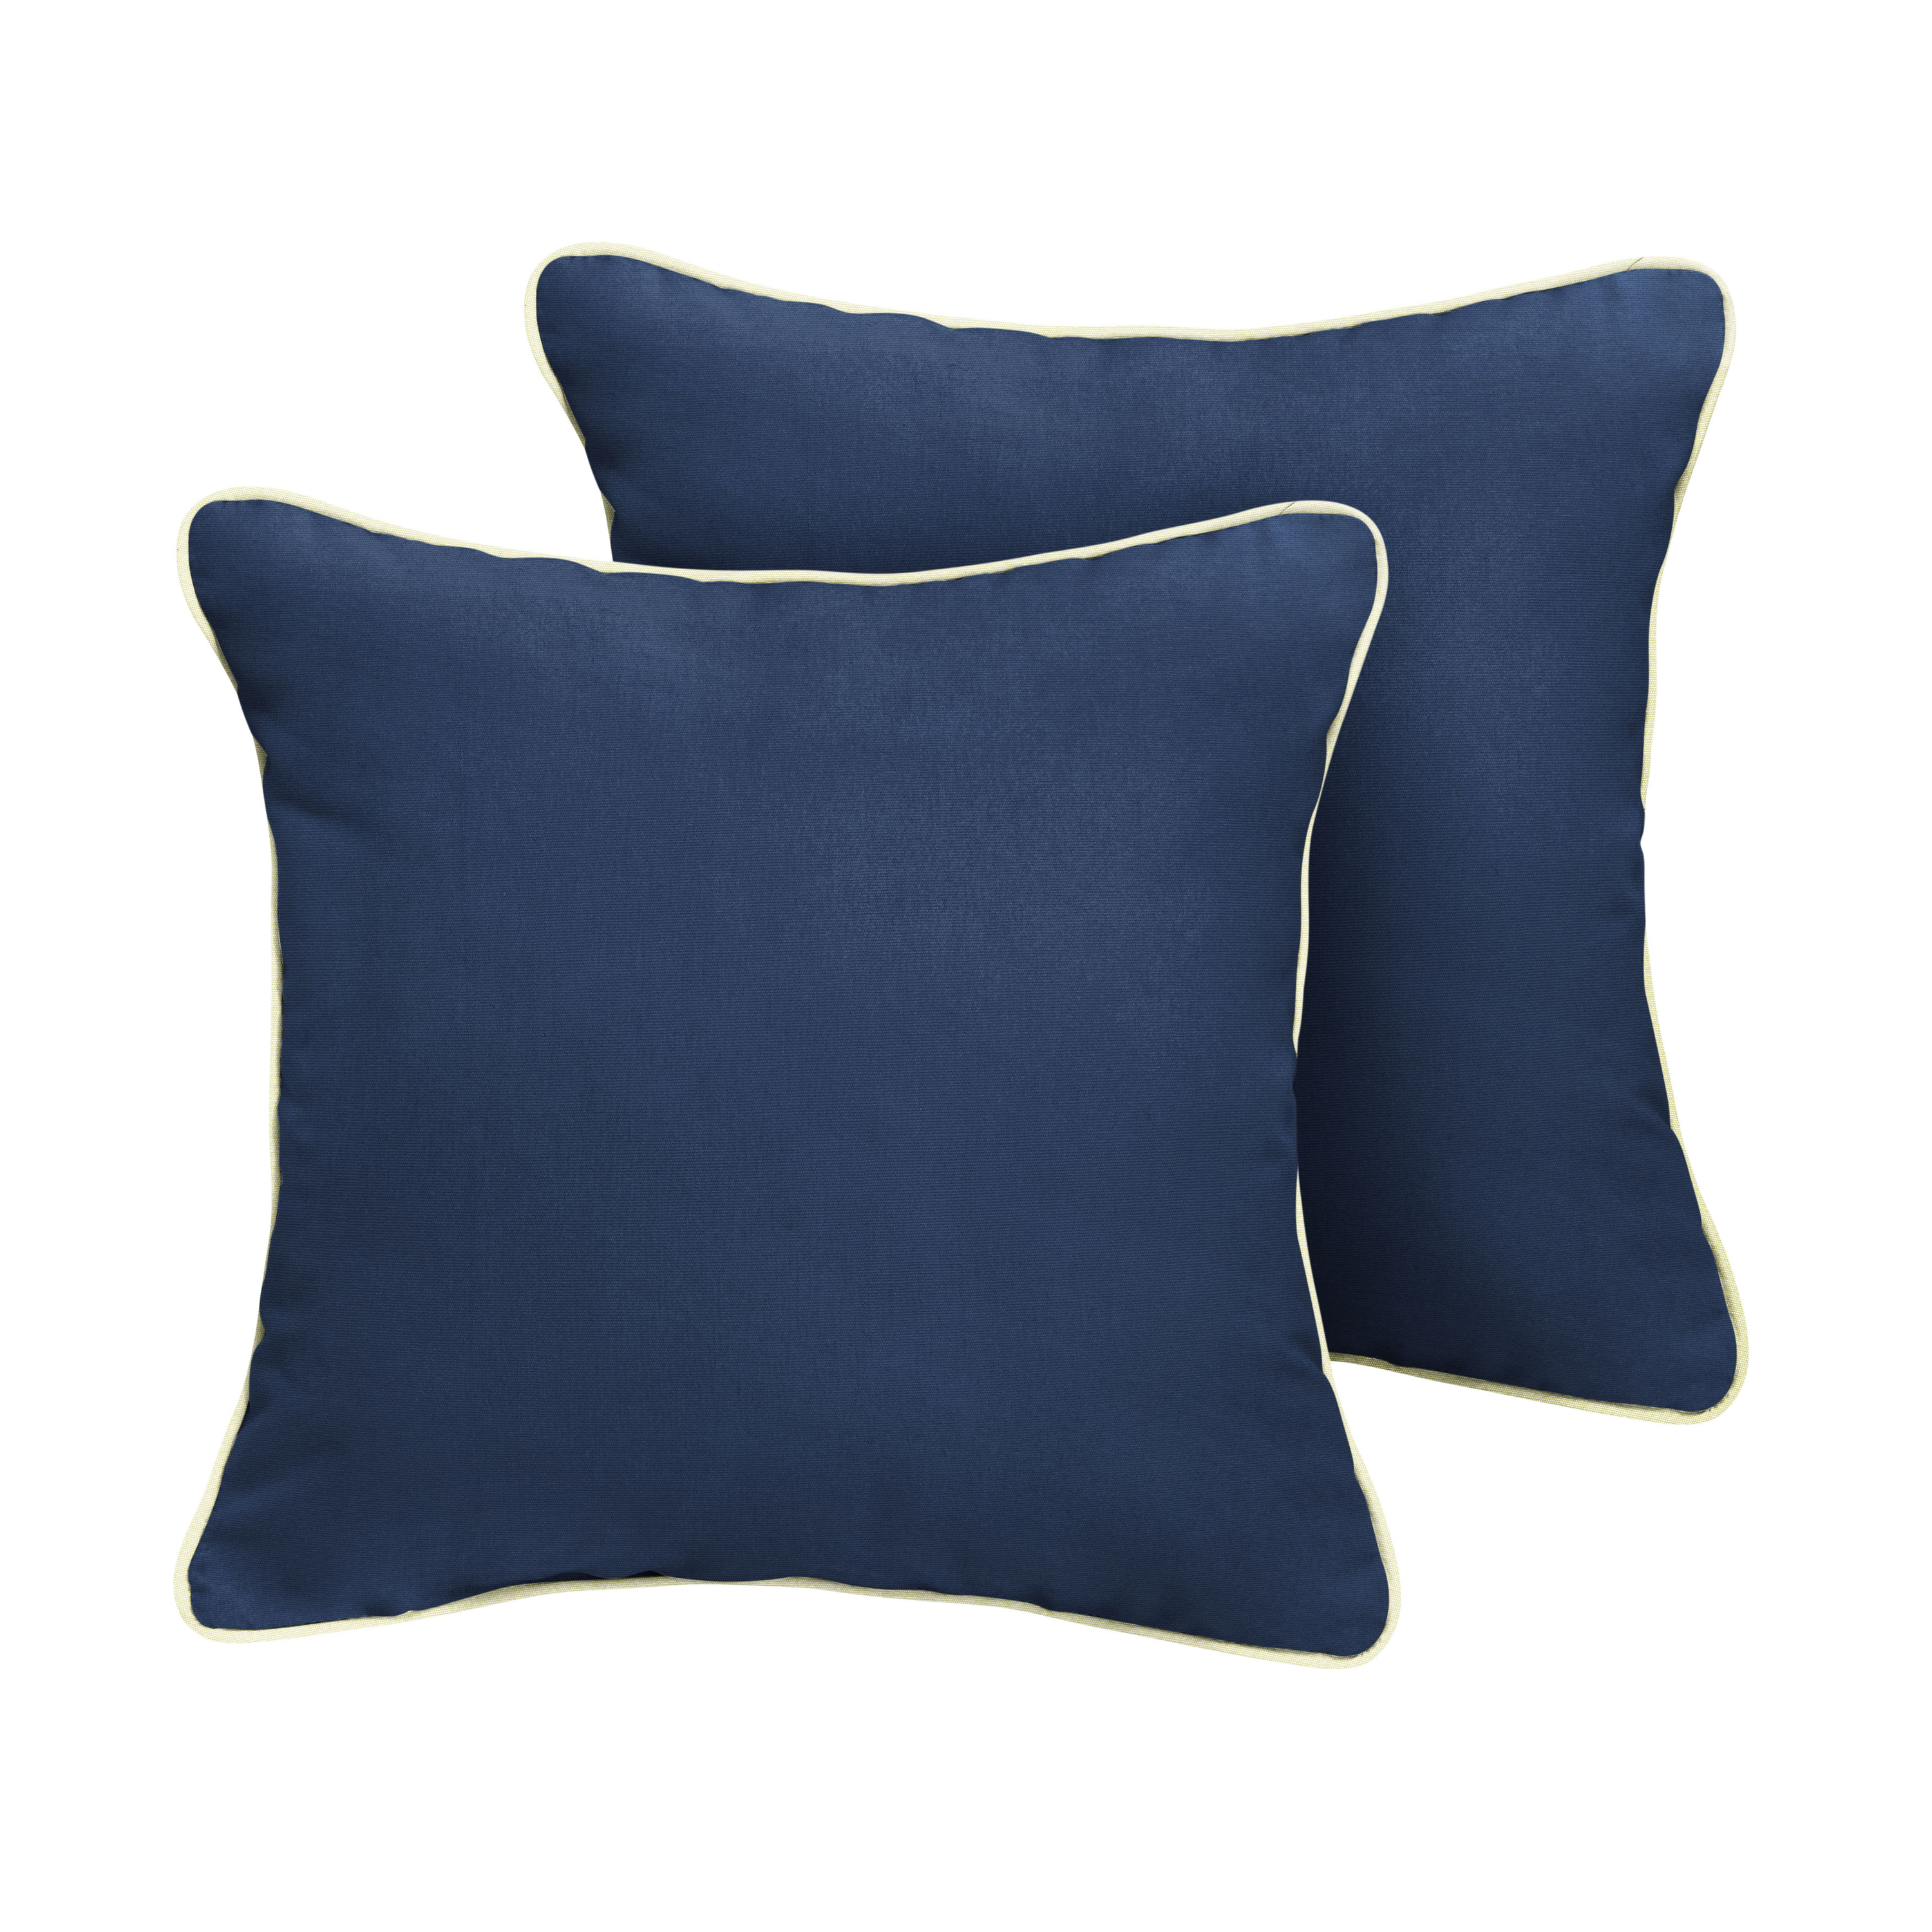 Sunbrella Pillows 18  x 18  Set of 2 in Canvas Navy with Canvas Natural Cording